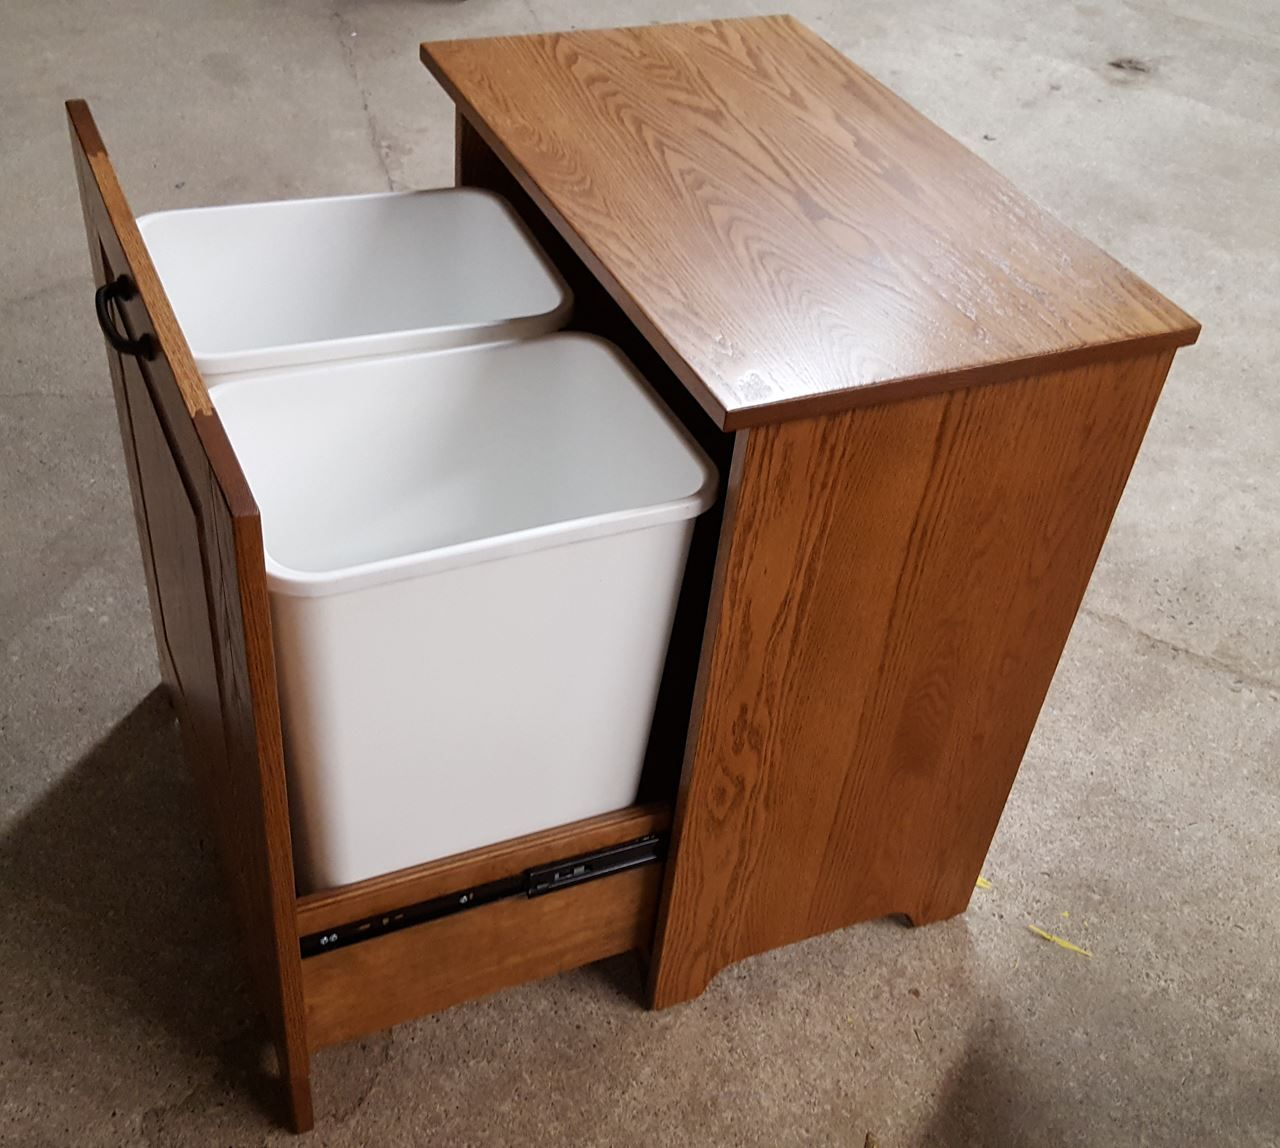 Amish Wooden Double Tilt Out Trash Bin Trash Can Cabinet Wooden Trash Can Holder Trash Bins